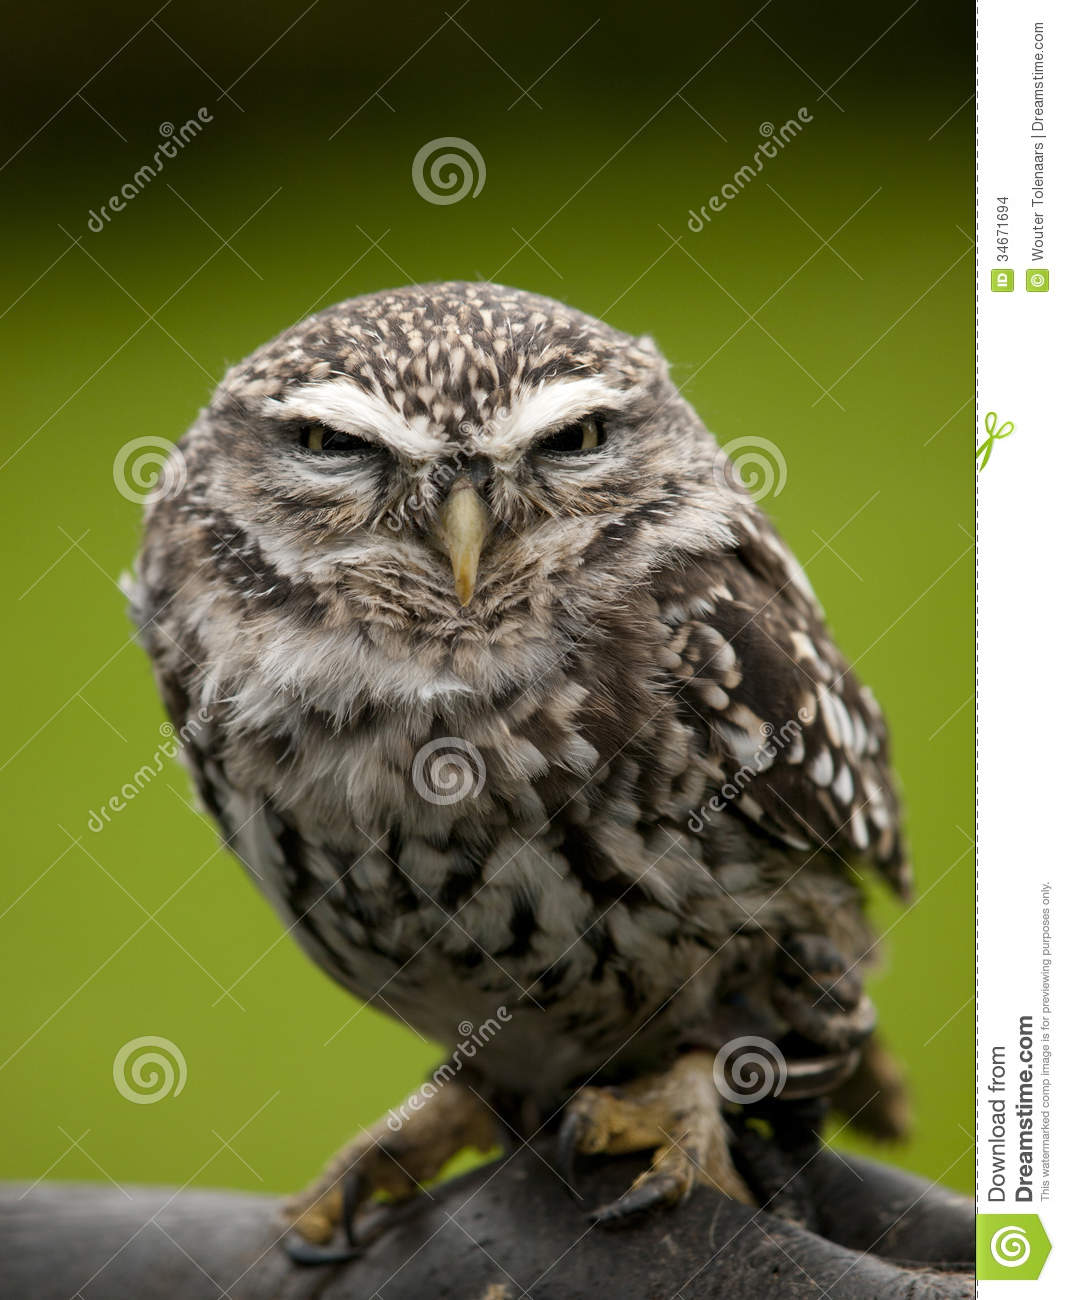 Angry Owl Clipart - Clipart Suggest